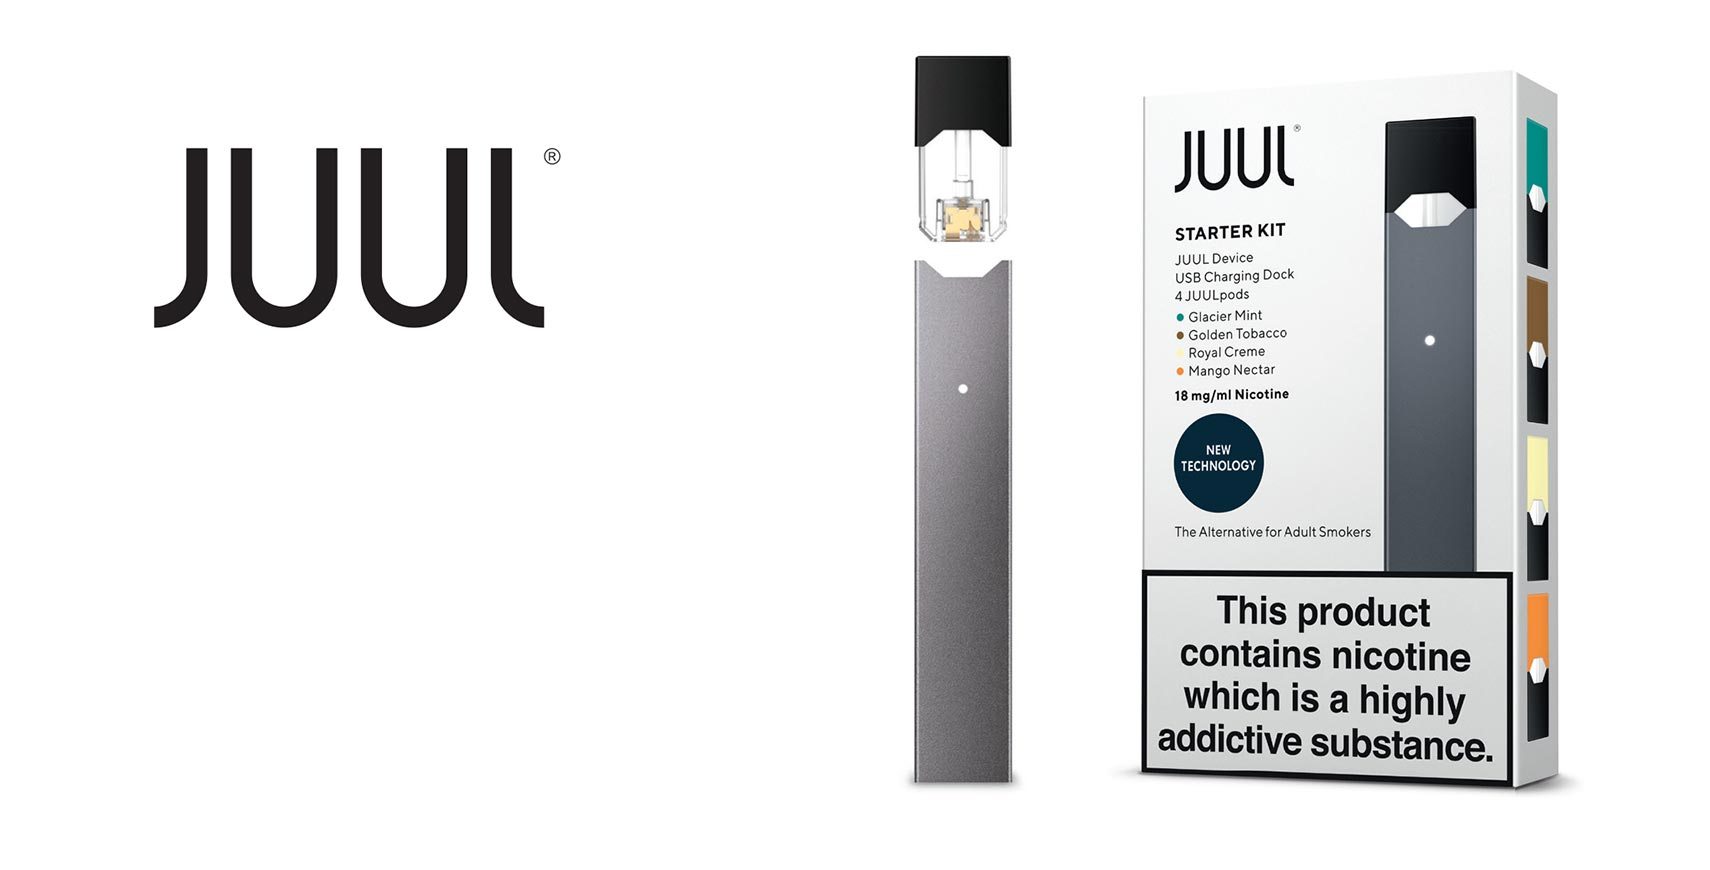 Juul logo and product